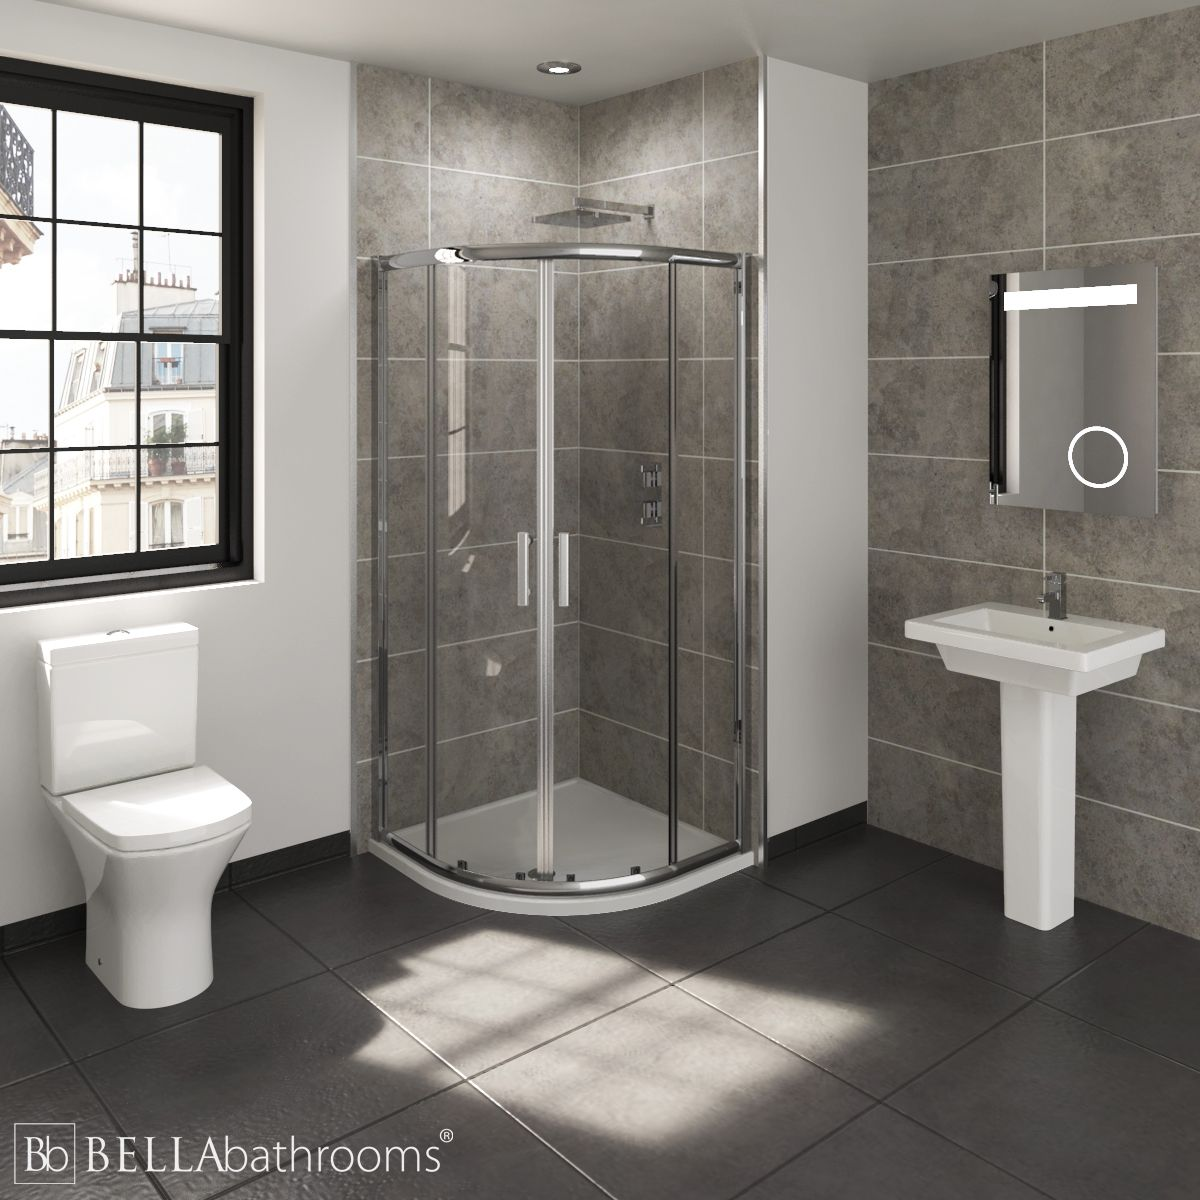 RAK Resort En-Suite with Quadrant Shower Enclosure